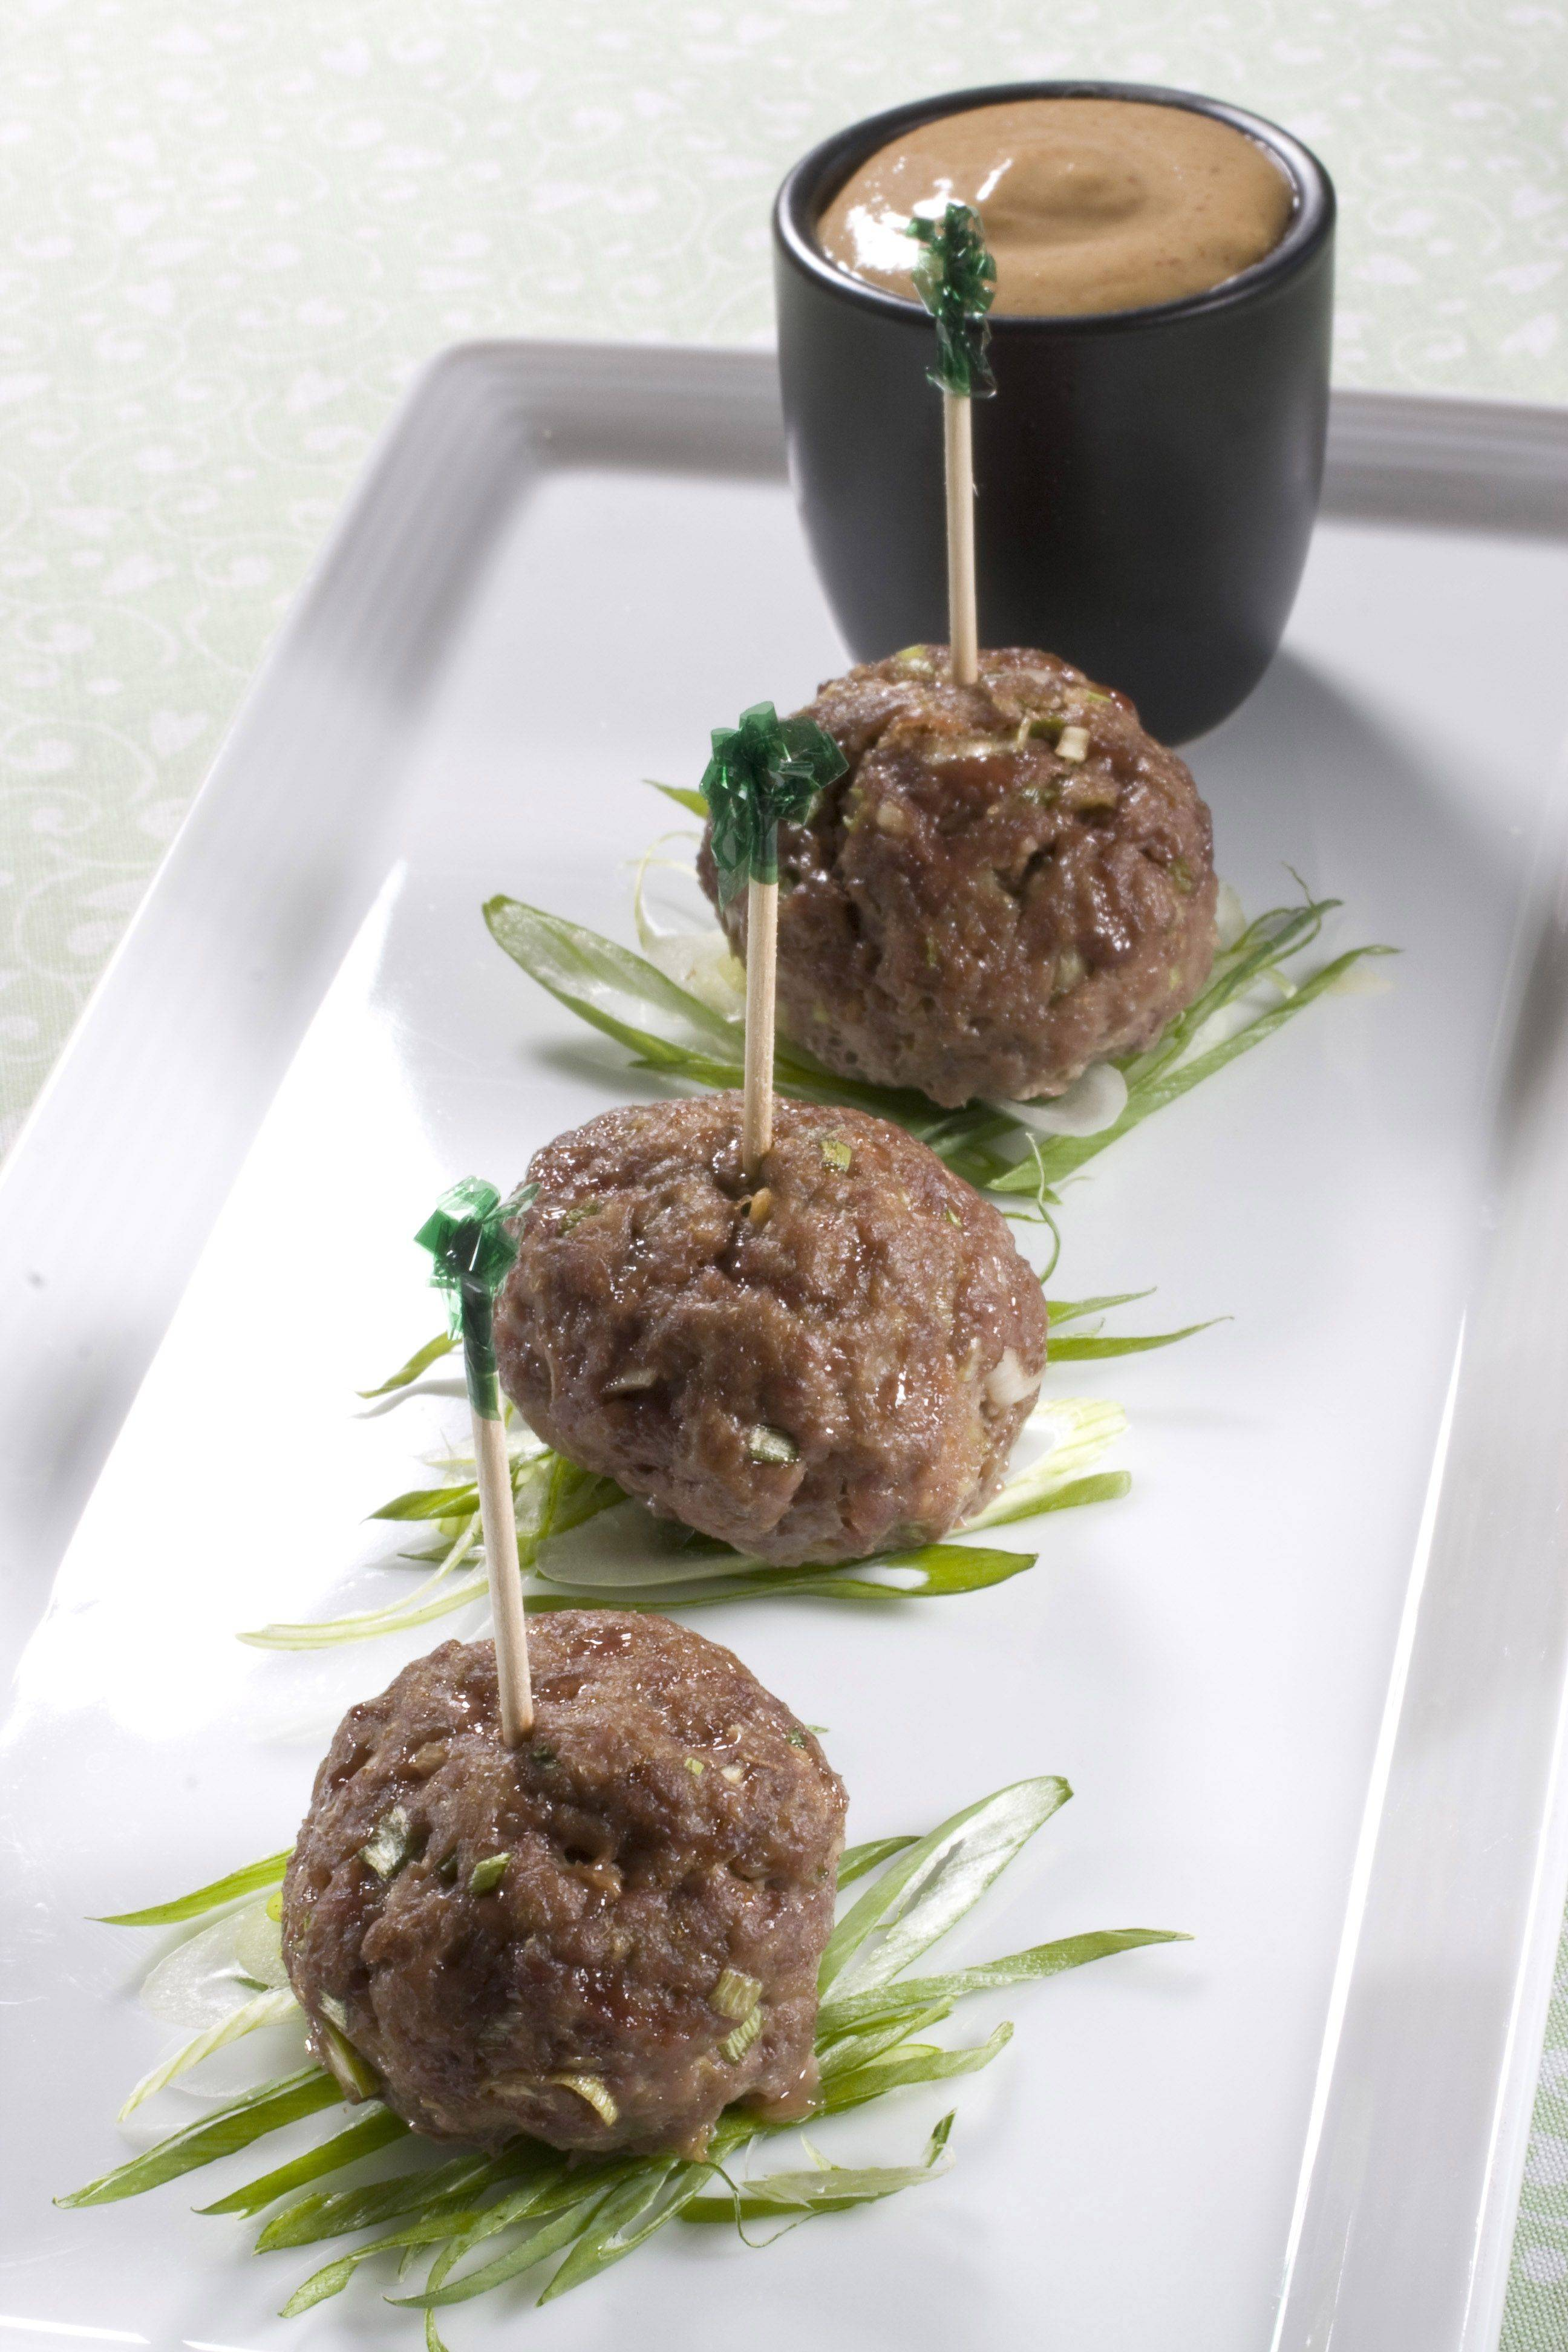 Miso-ginger meatballs with spicy peanut dipping sauce are adaptable to your serving or taste preferences. They also make great burgers and can be made from a variety of different meats.